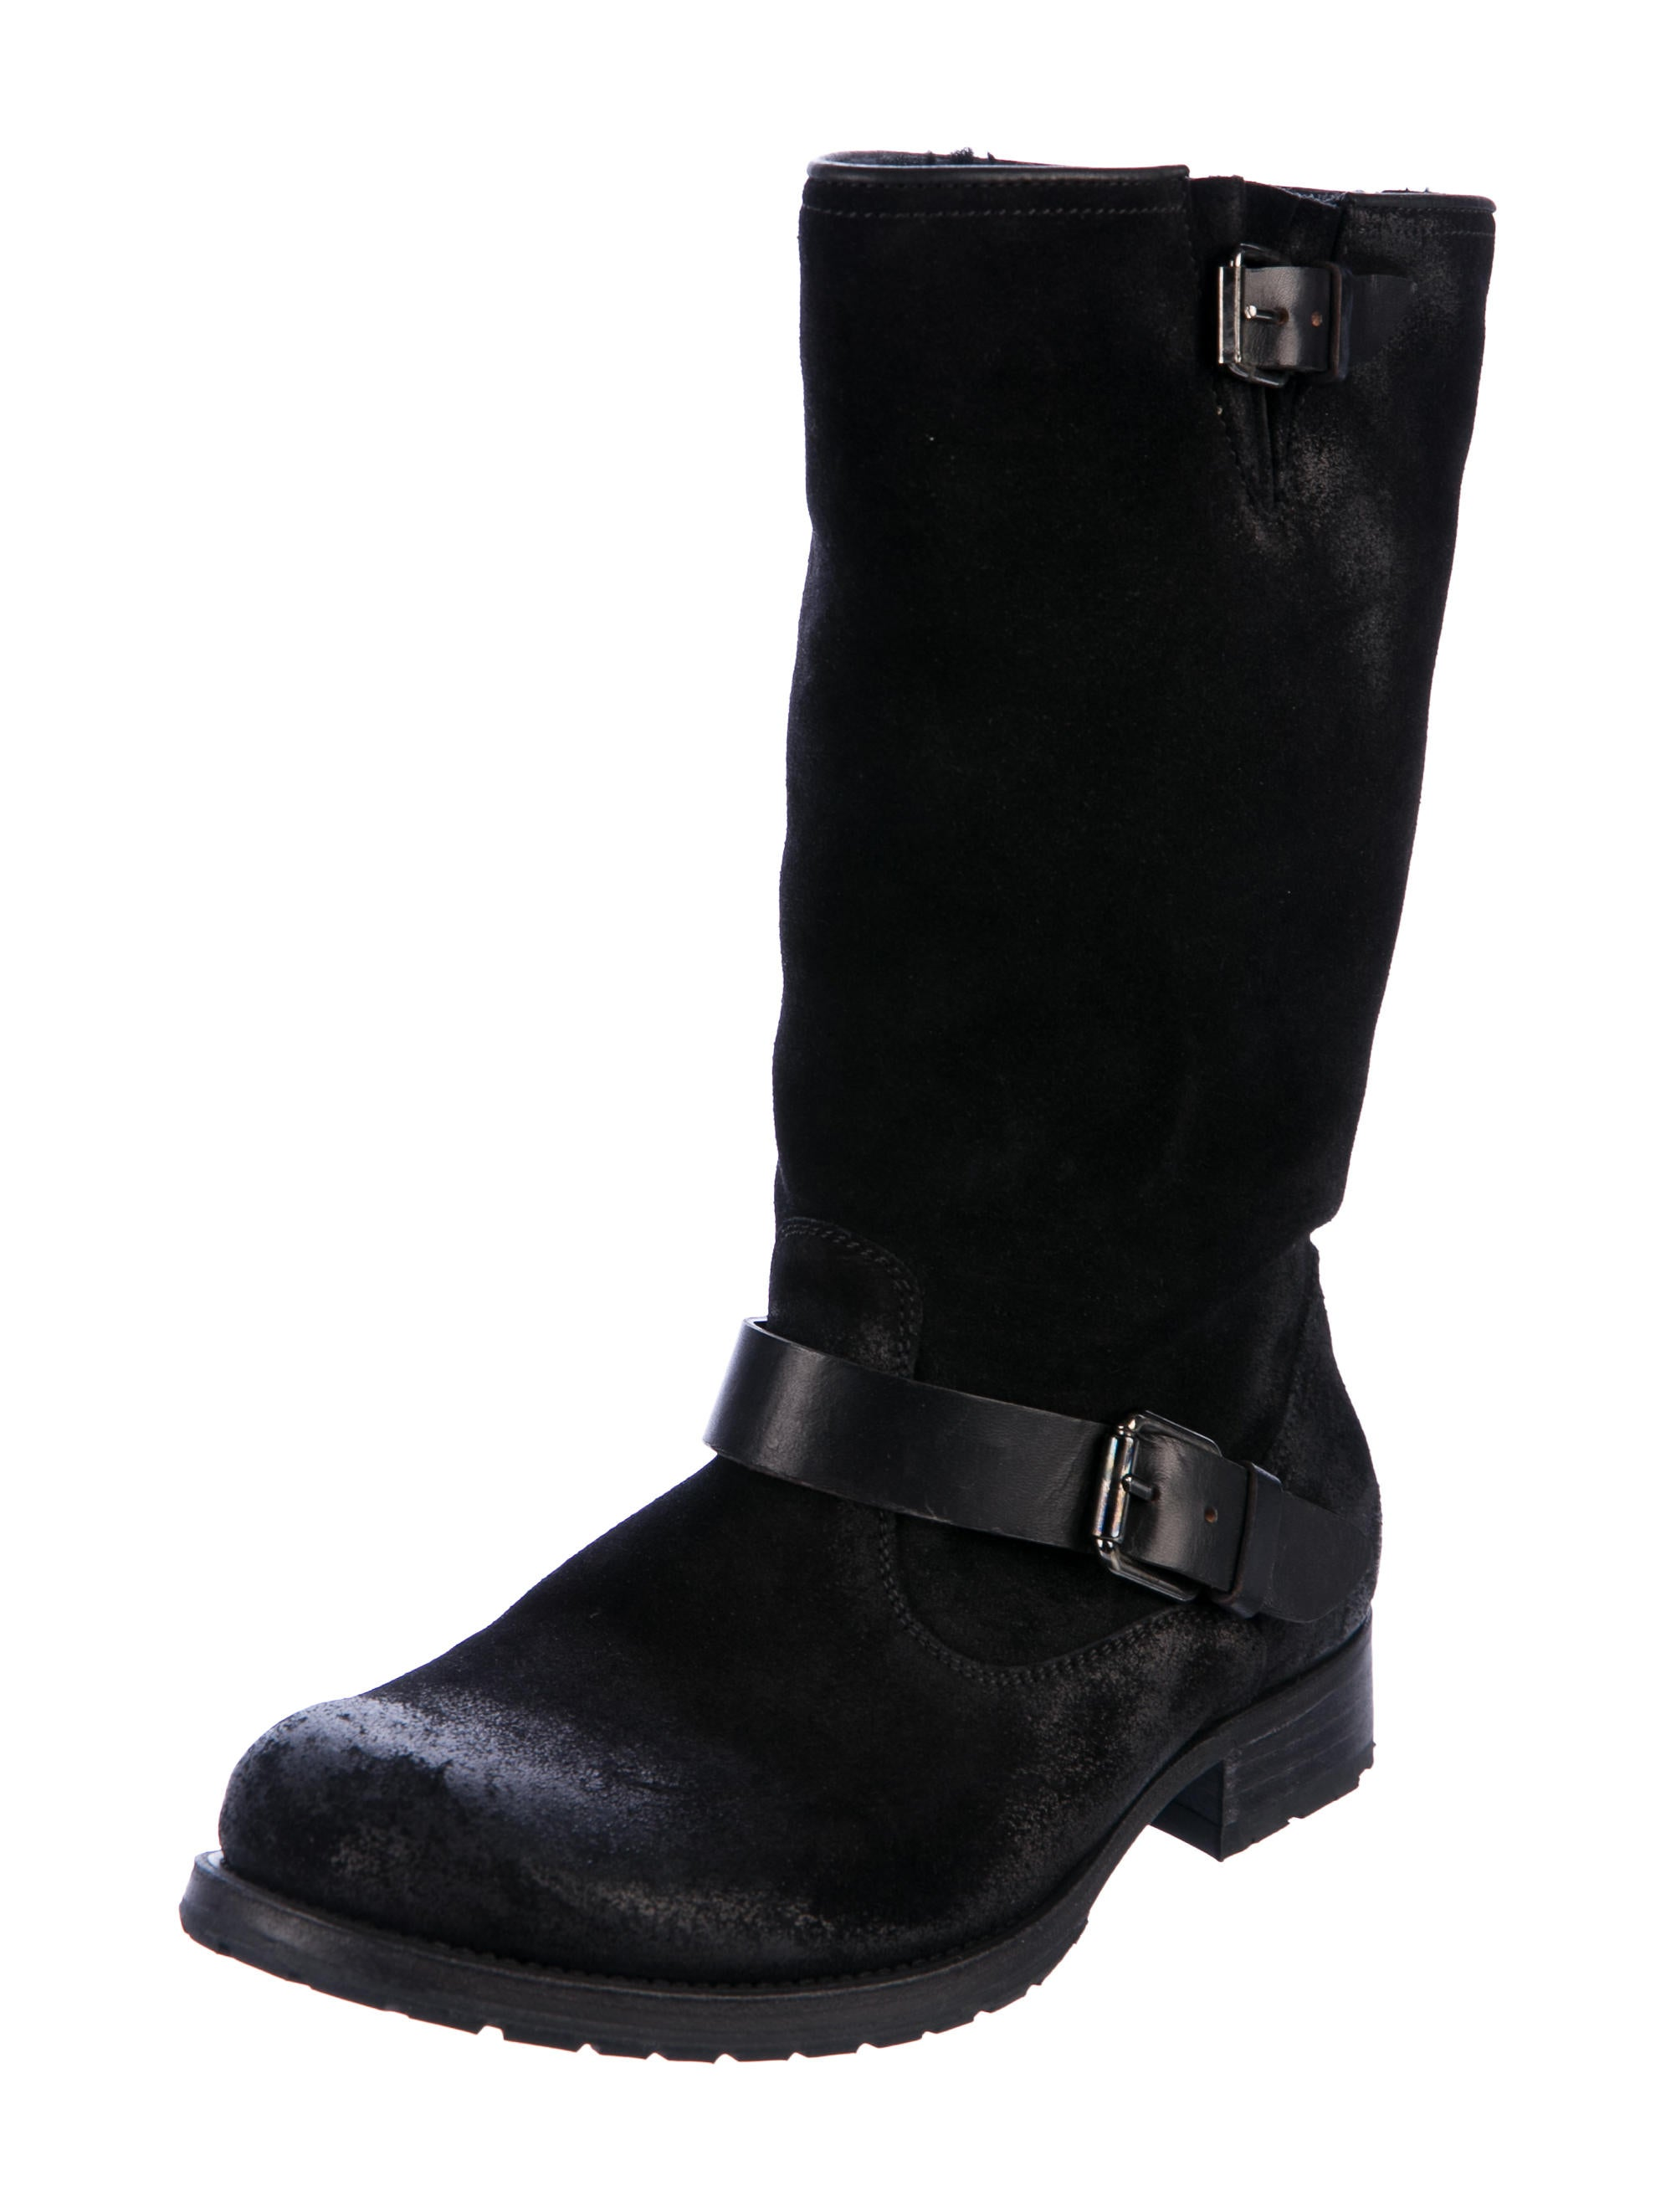 n.d.c. Distressed Suede Mid-Calf Boots fast delivery JlmtpZJpuH